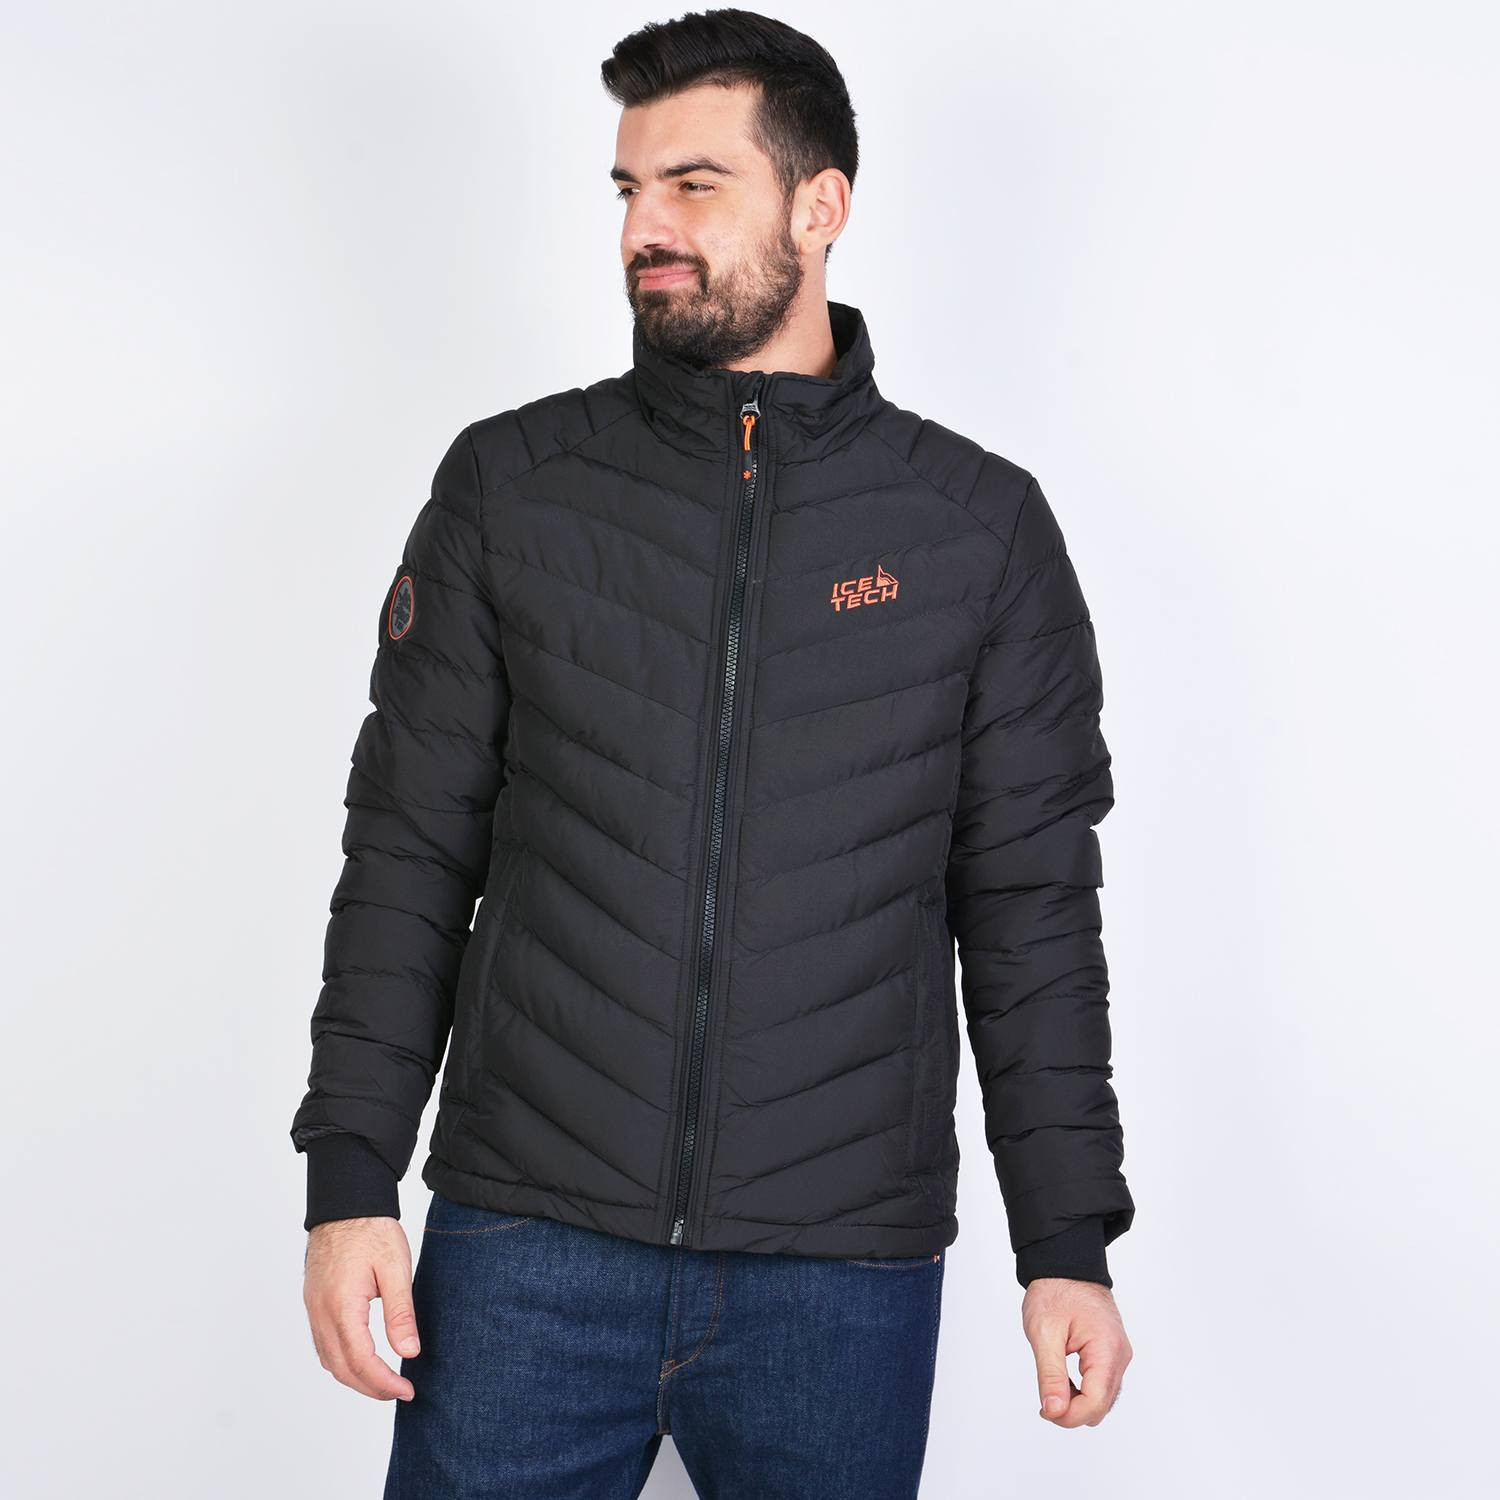 Ice Tech MENS JACKETS (9000042516_1469)